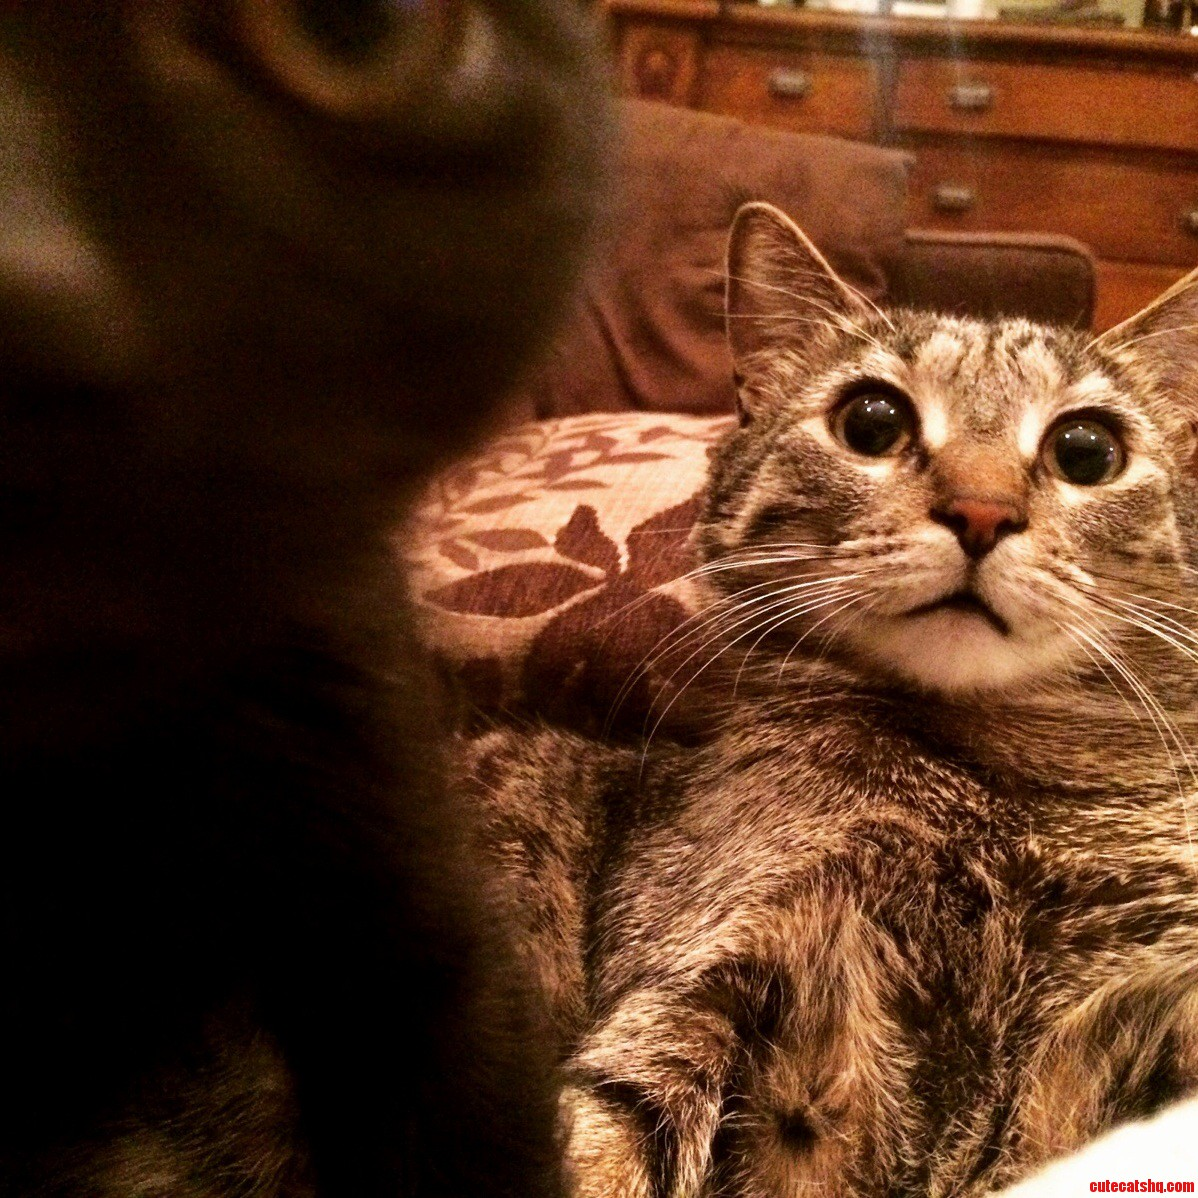 Kitteh photobomb